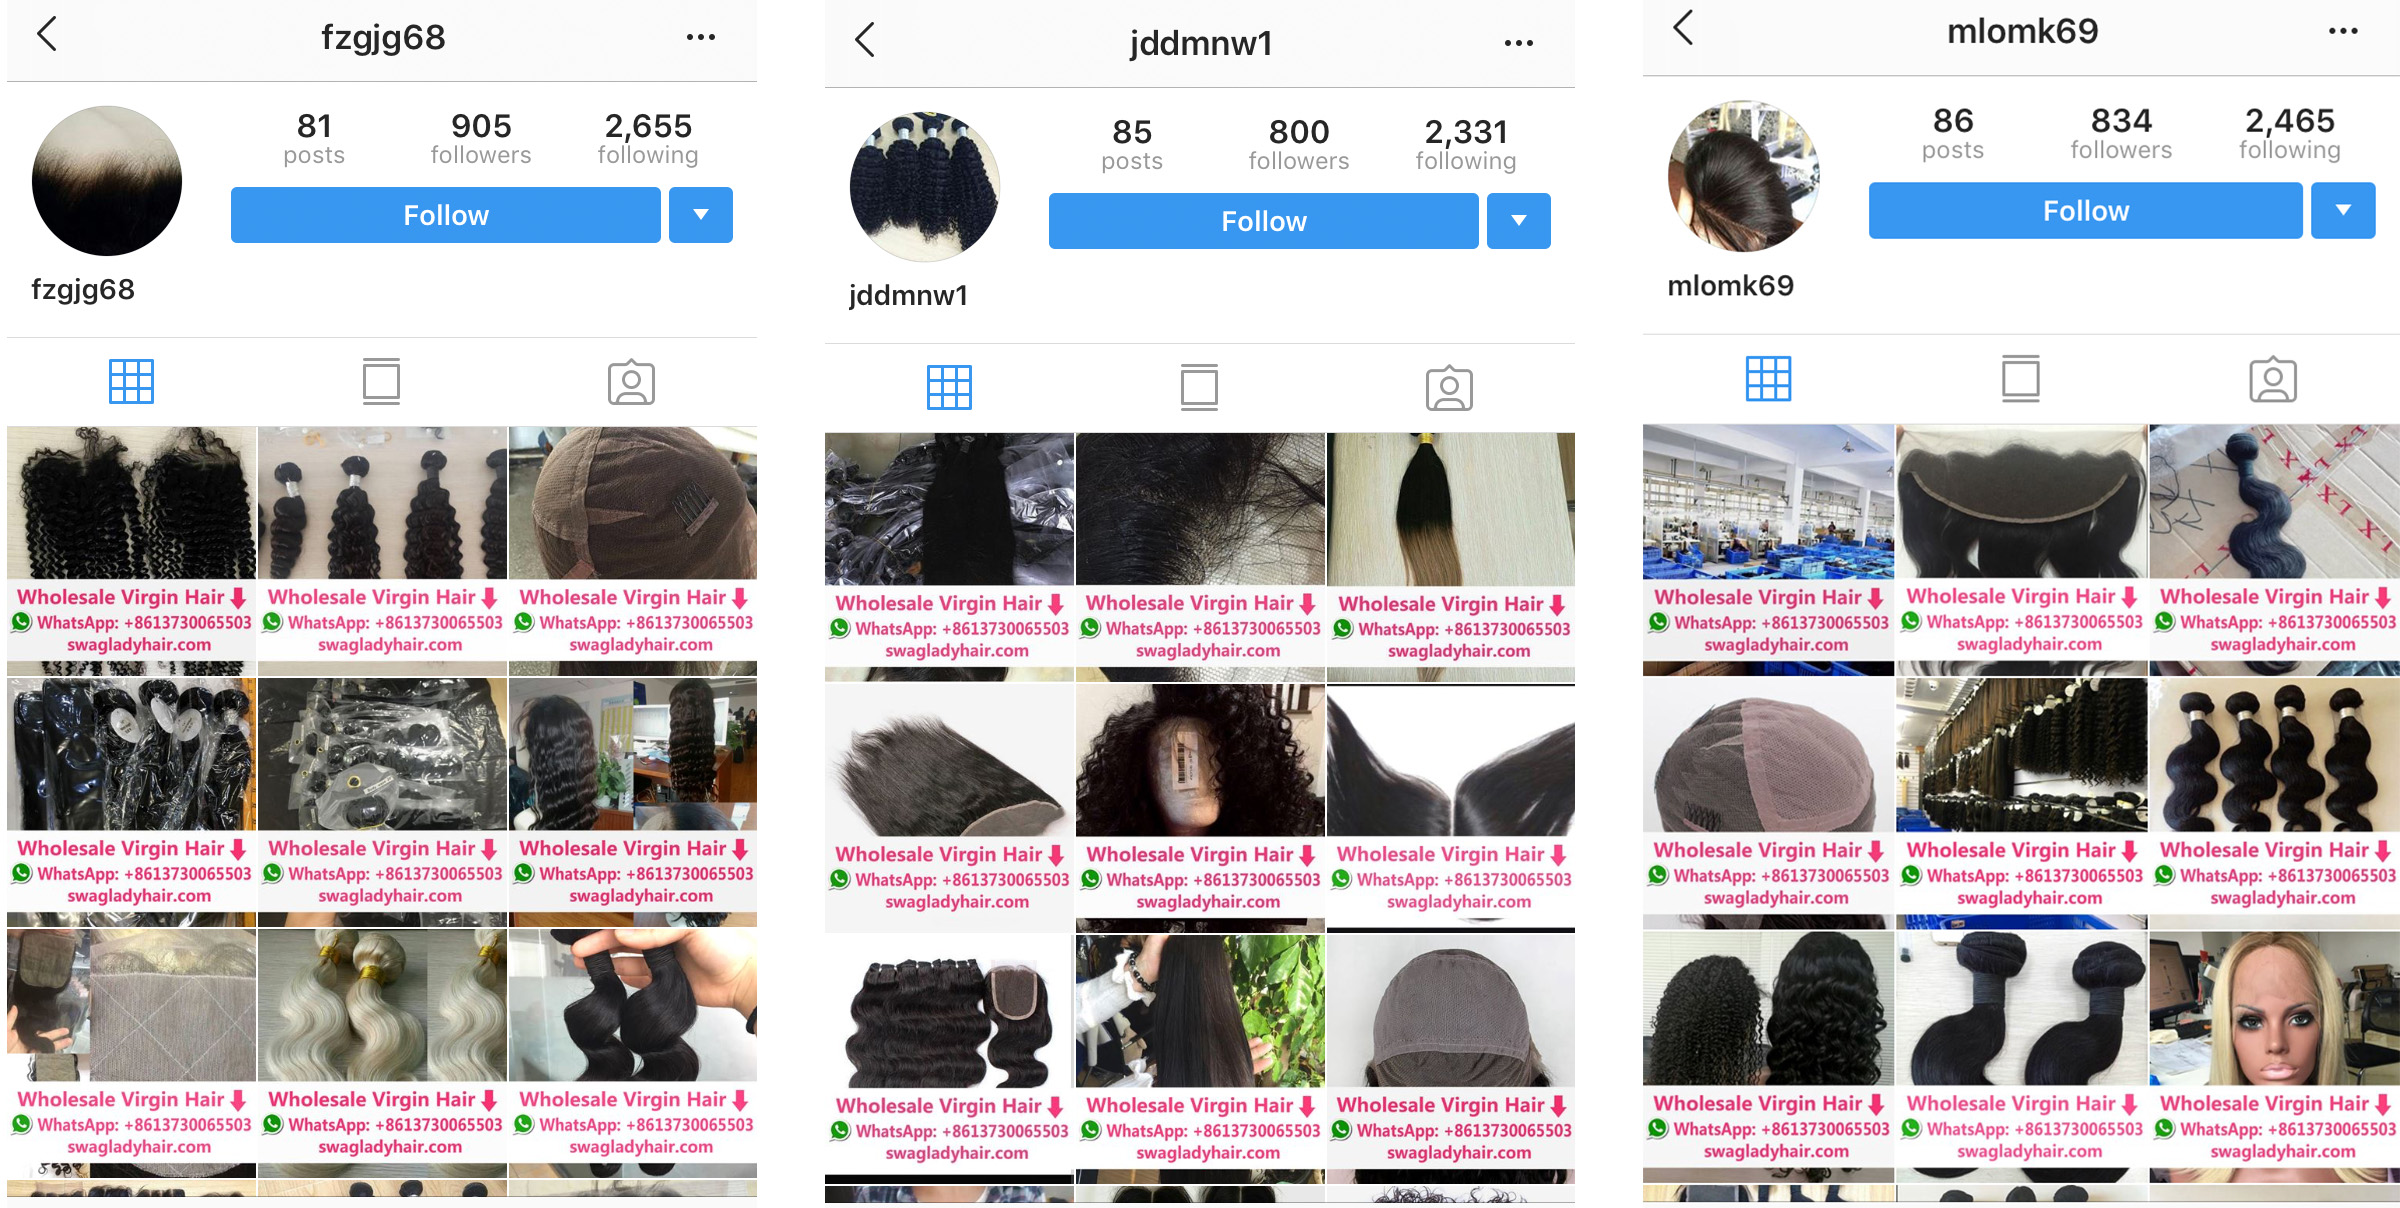 Are Russian Bots Selling Weaves on Instagram? An Investigation - VICE